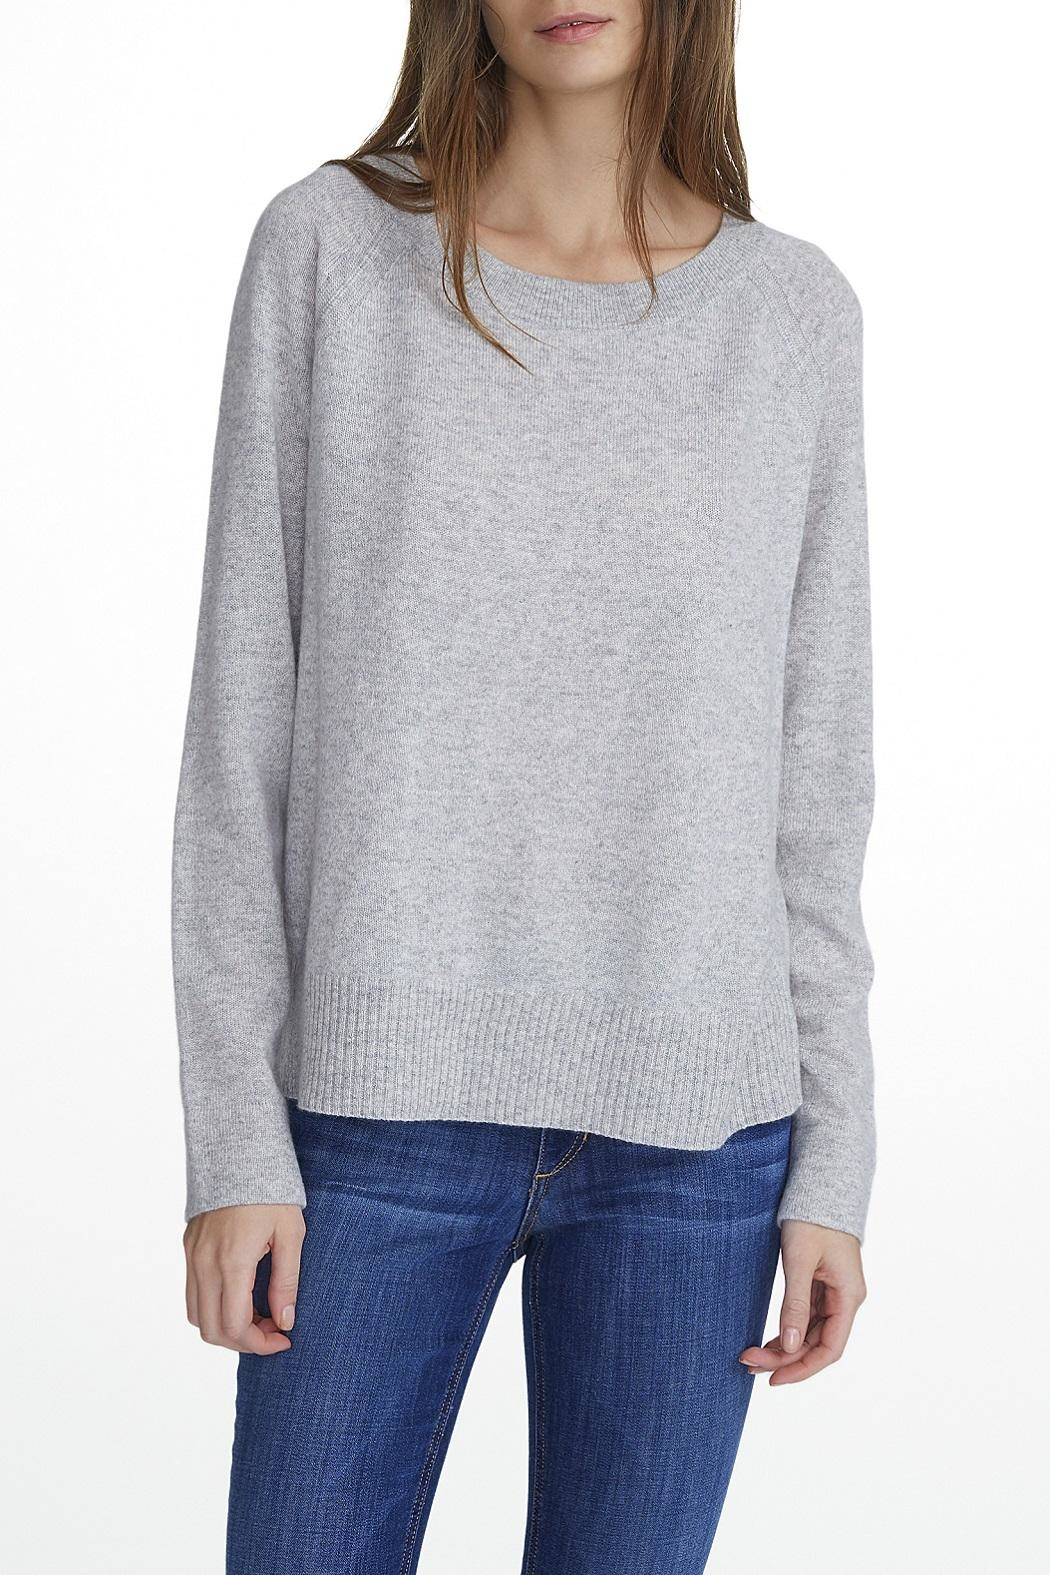 White + Warren Essential Cashmere Sweatshirt - Main Image